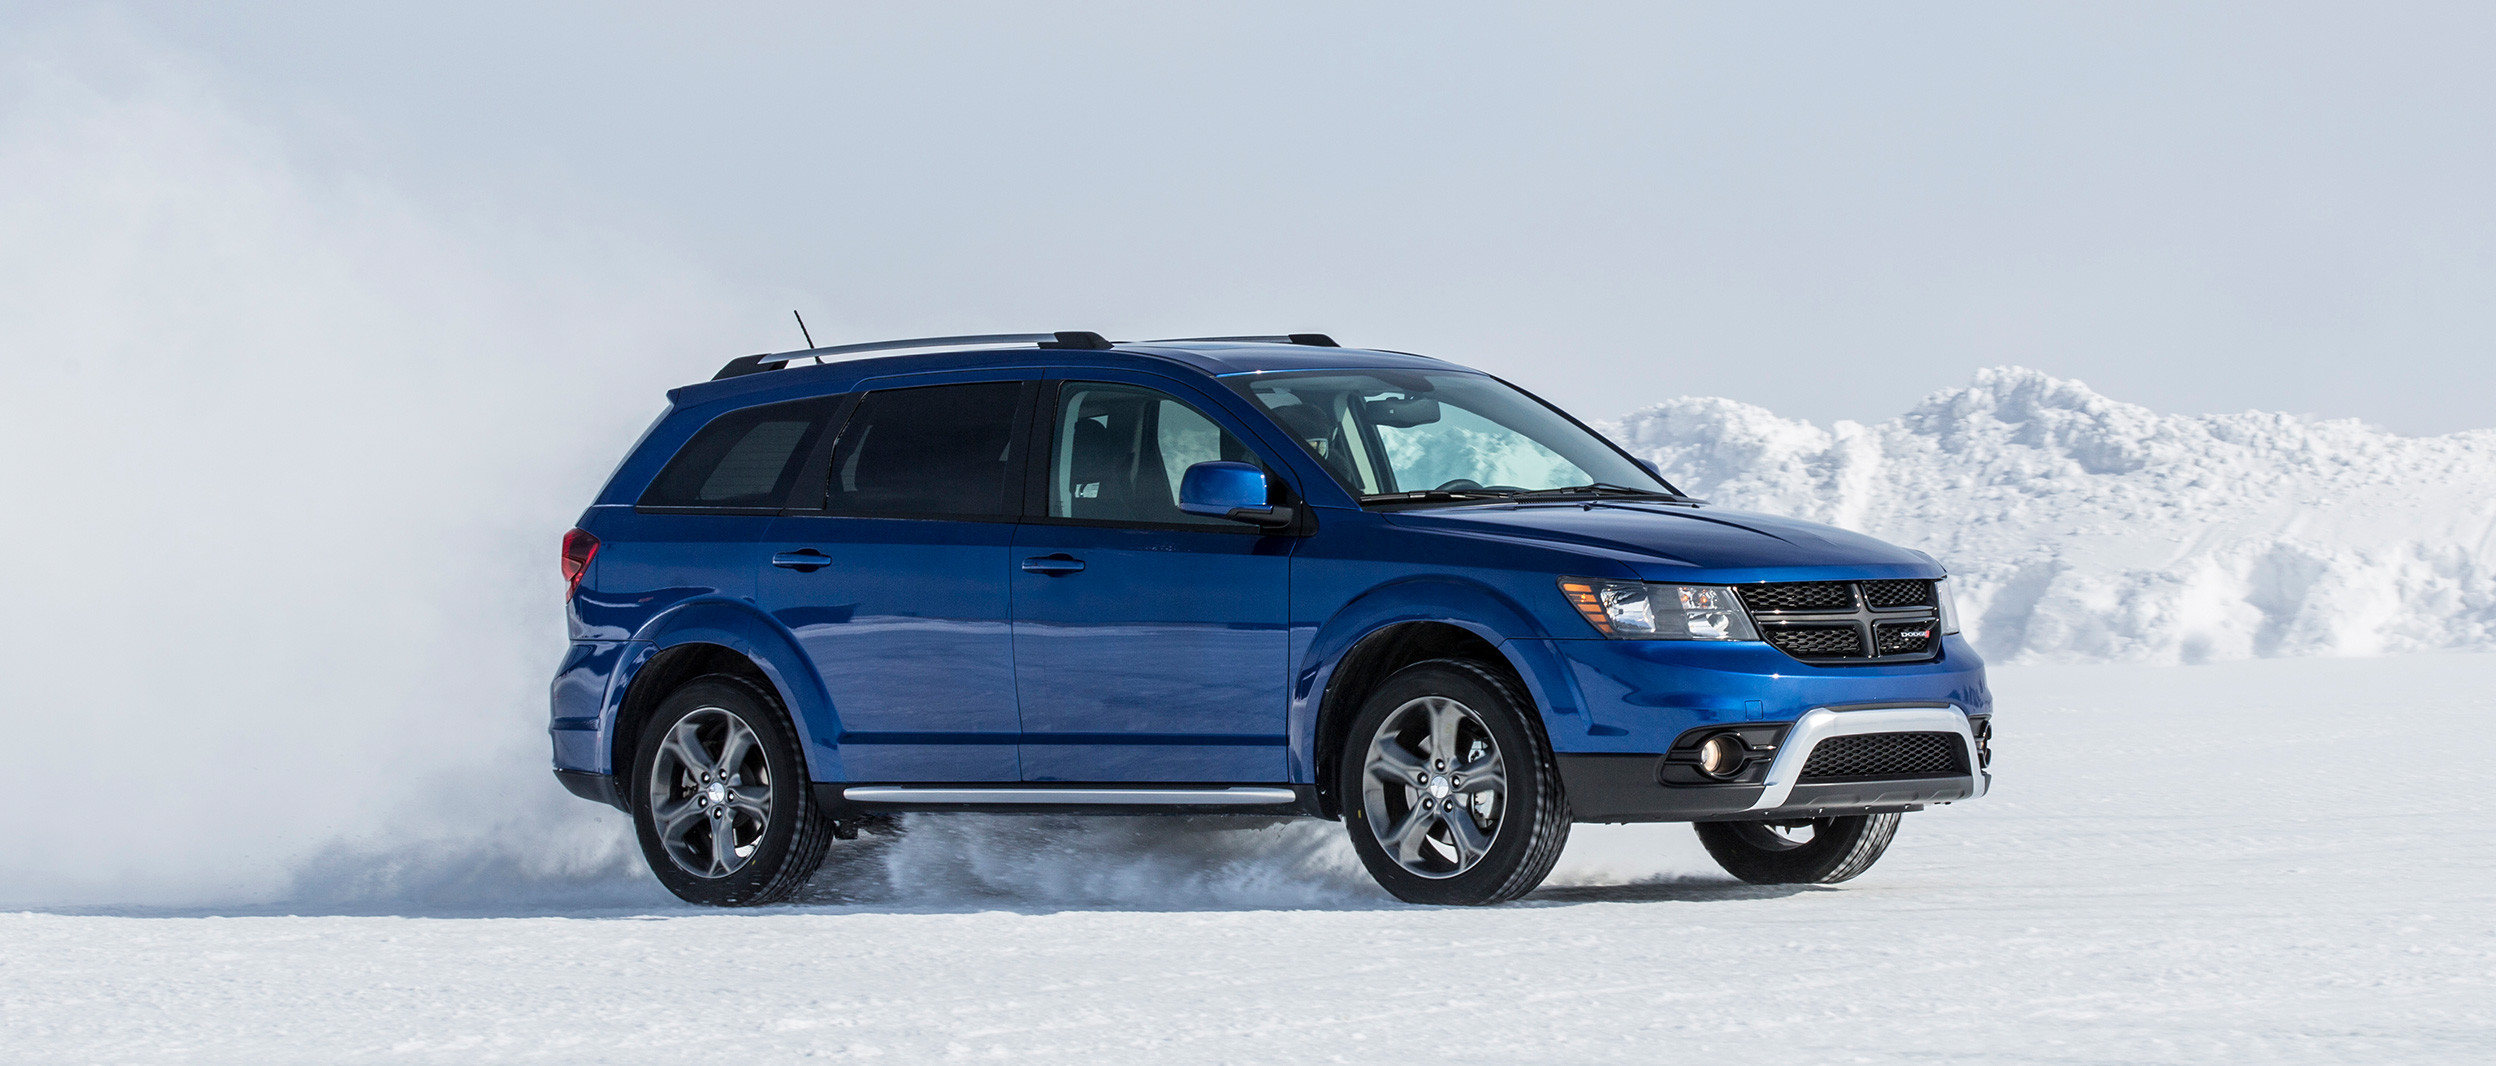 Side view of the blue 2019 Dodge Journey driving through a snowy field in the mountains